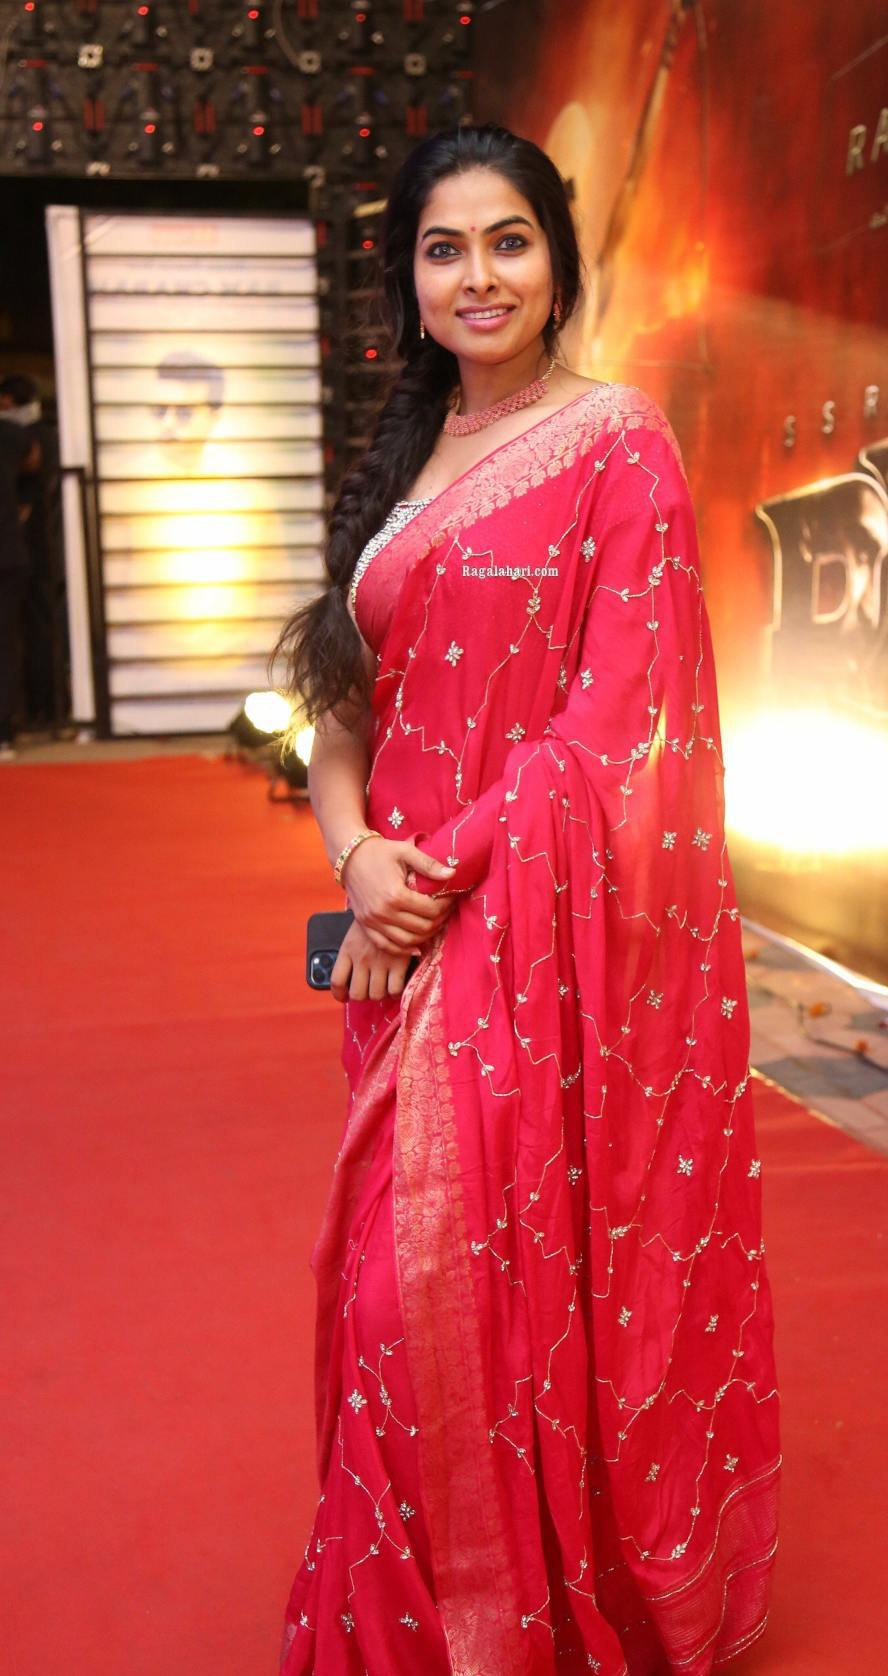 Divi Vadthya in a pink saree by Jahnavi Varma for Ramchran b'day celebrations